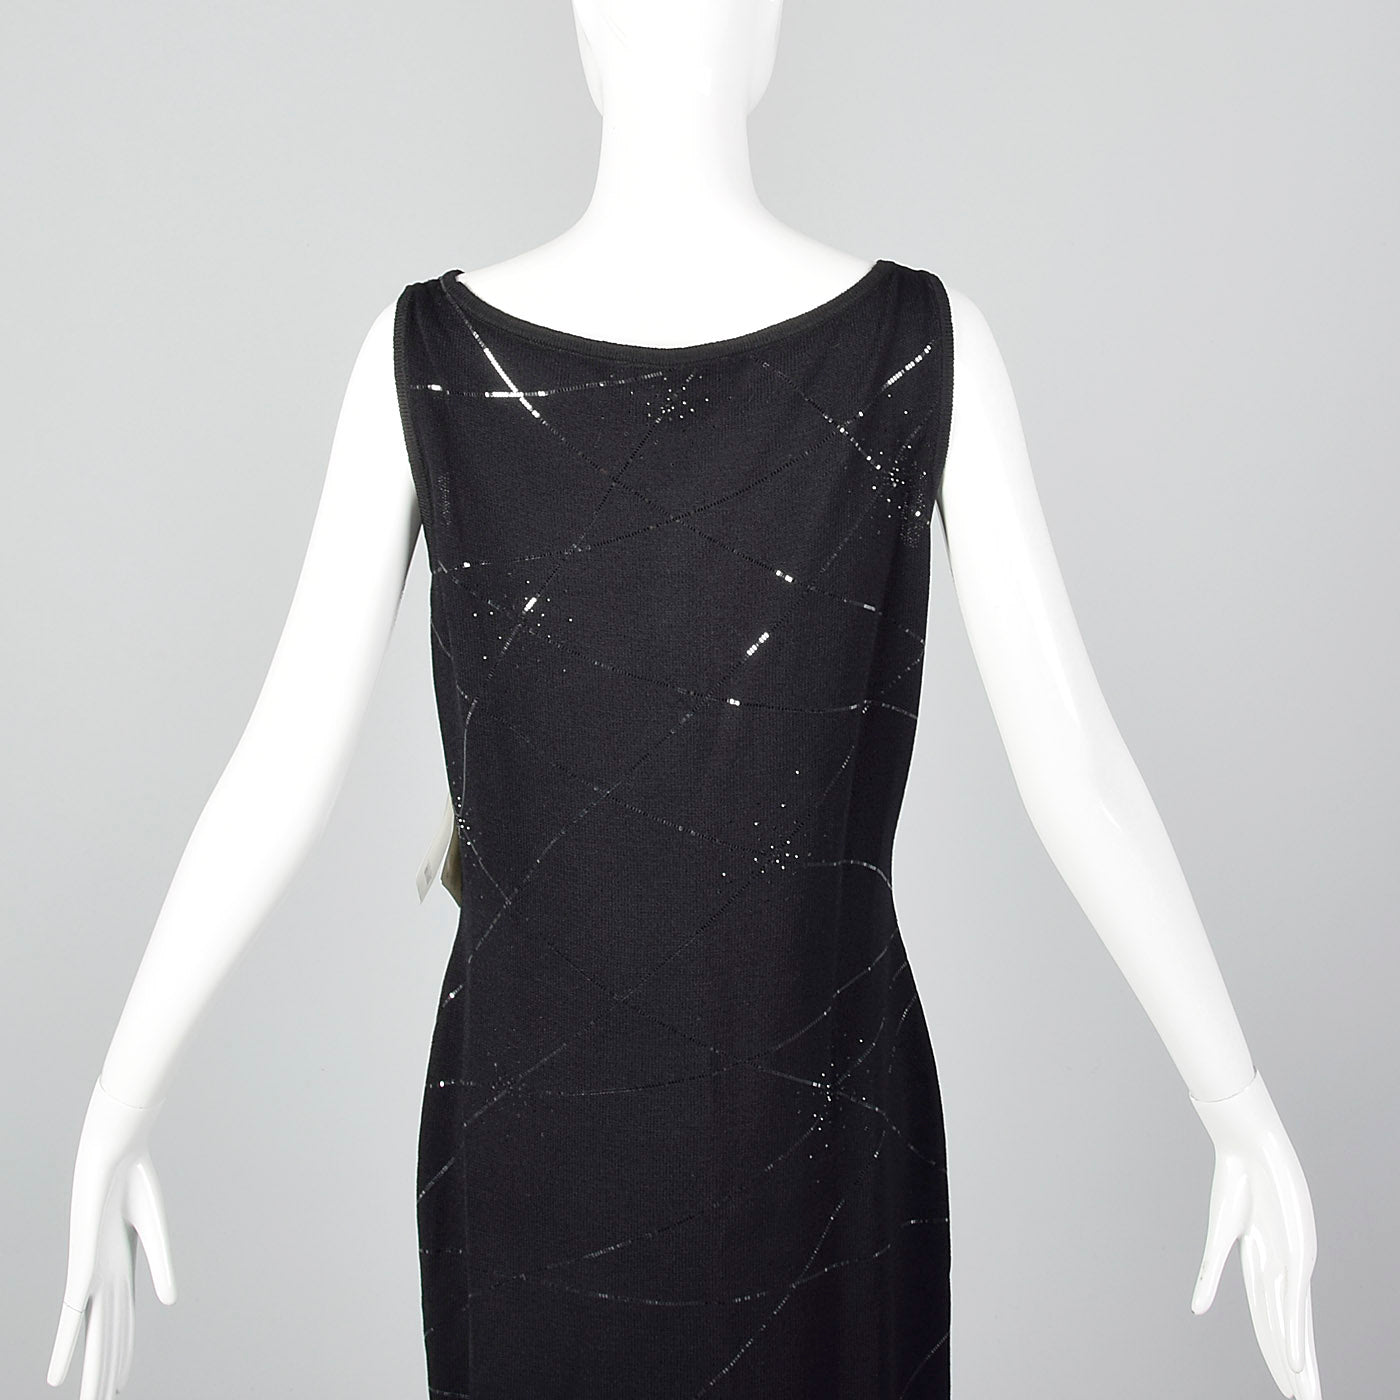 1990s St John Evening Deadstock Black Knit Dress with Sequin Trim